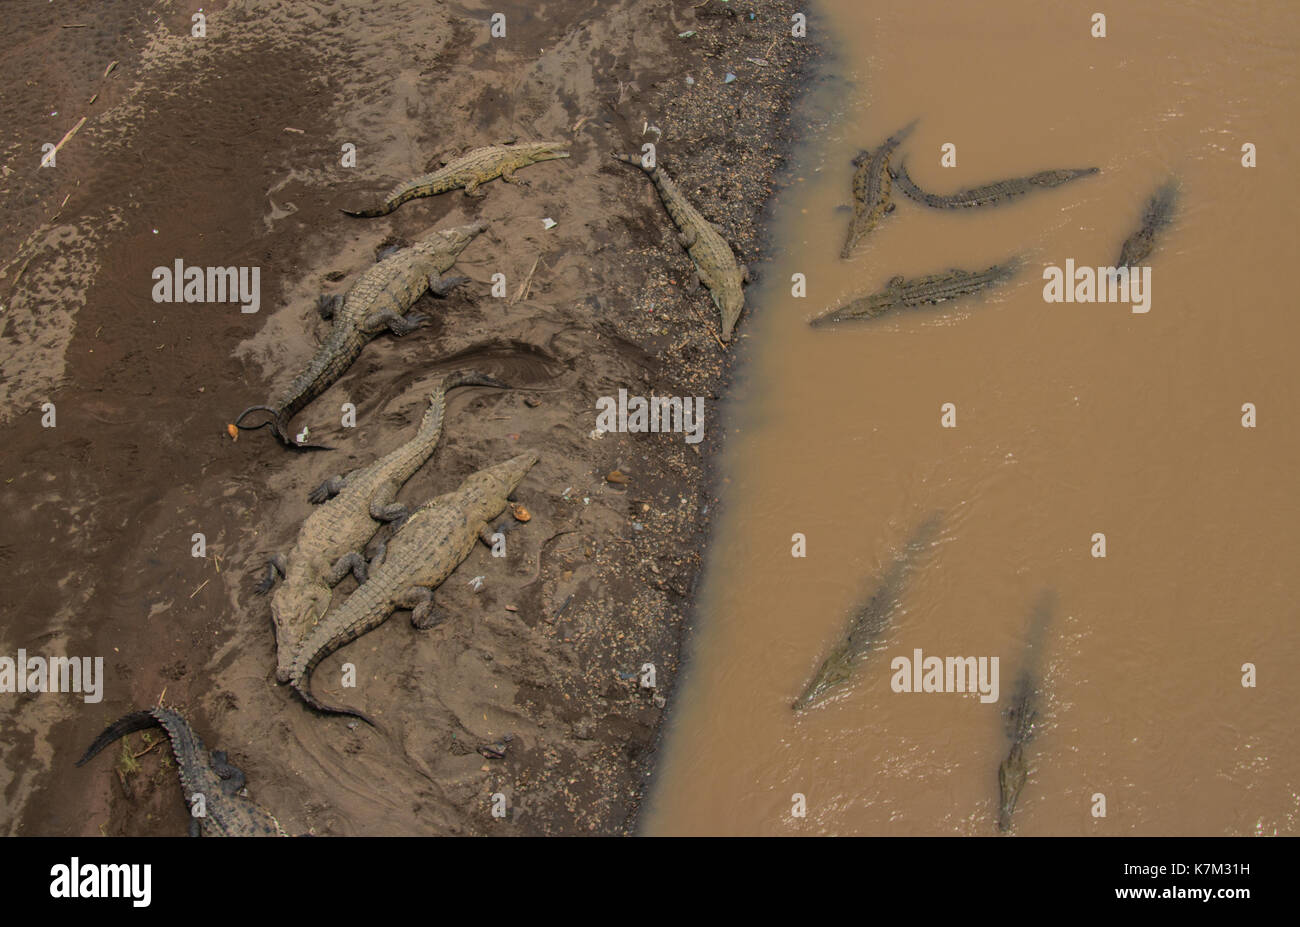 Crocodiles Bathing at Tarcoles River (Costa Rica) - Stock Image